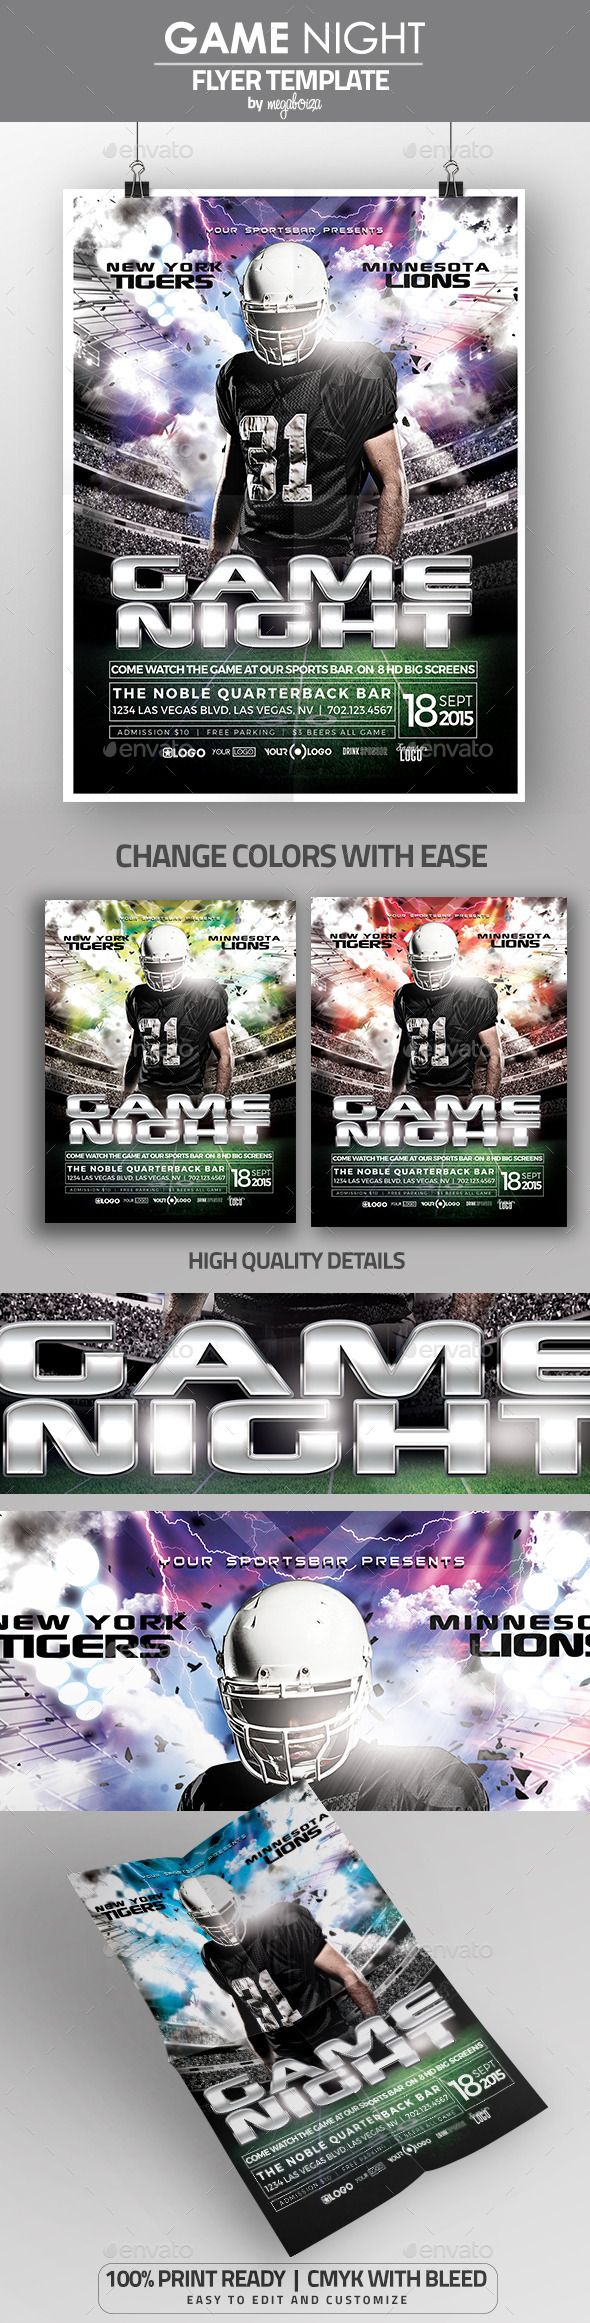 Game Night Football Flyer Poster Template